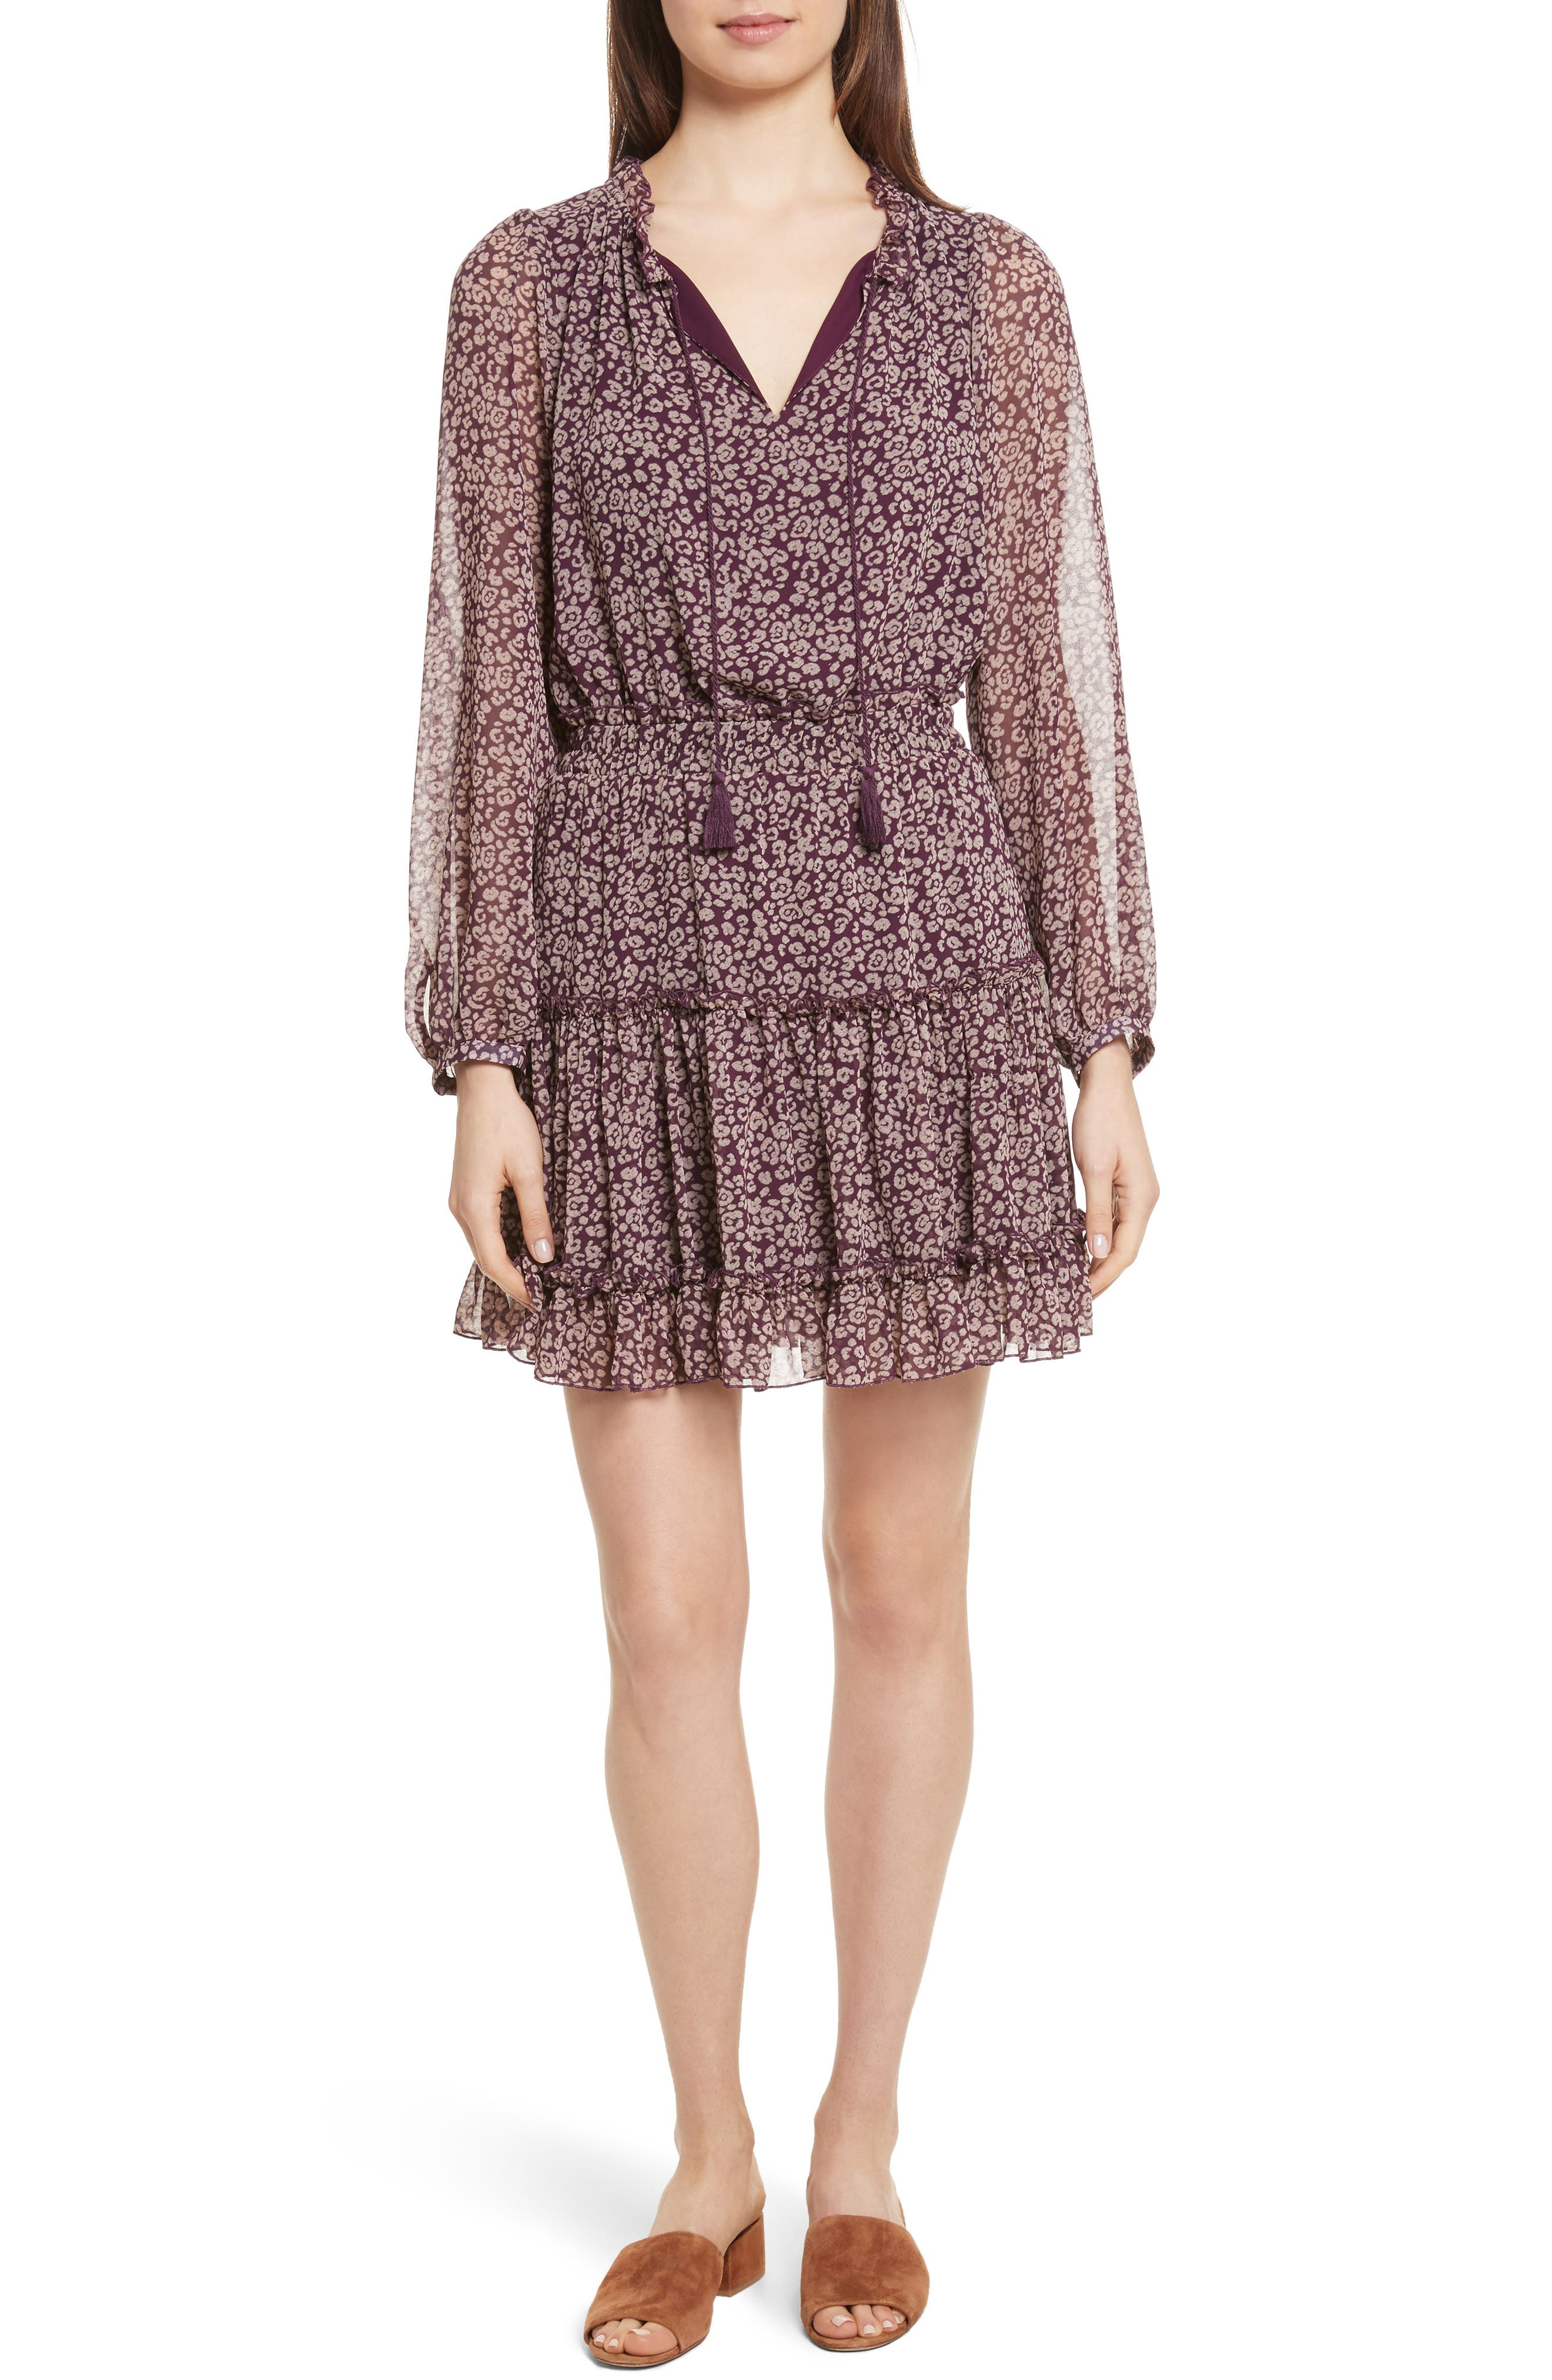 Alternate Image 1 Selected - Rebecca Minkoff Rosemary A-Line Dress